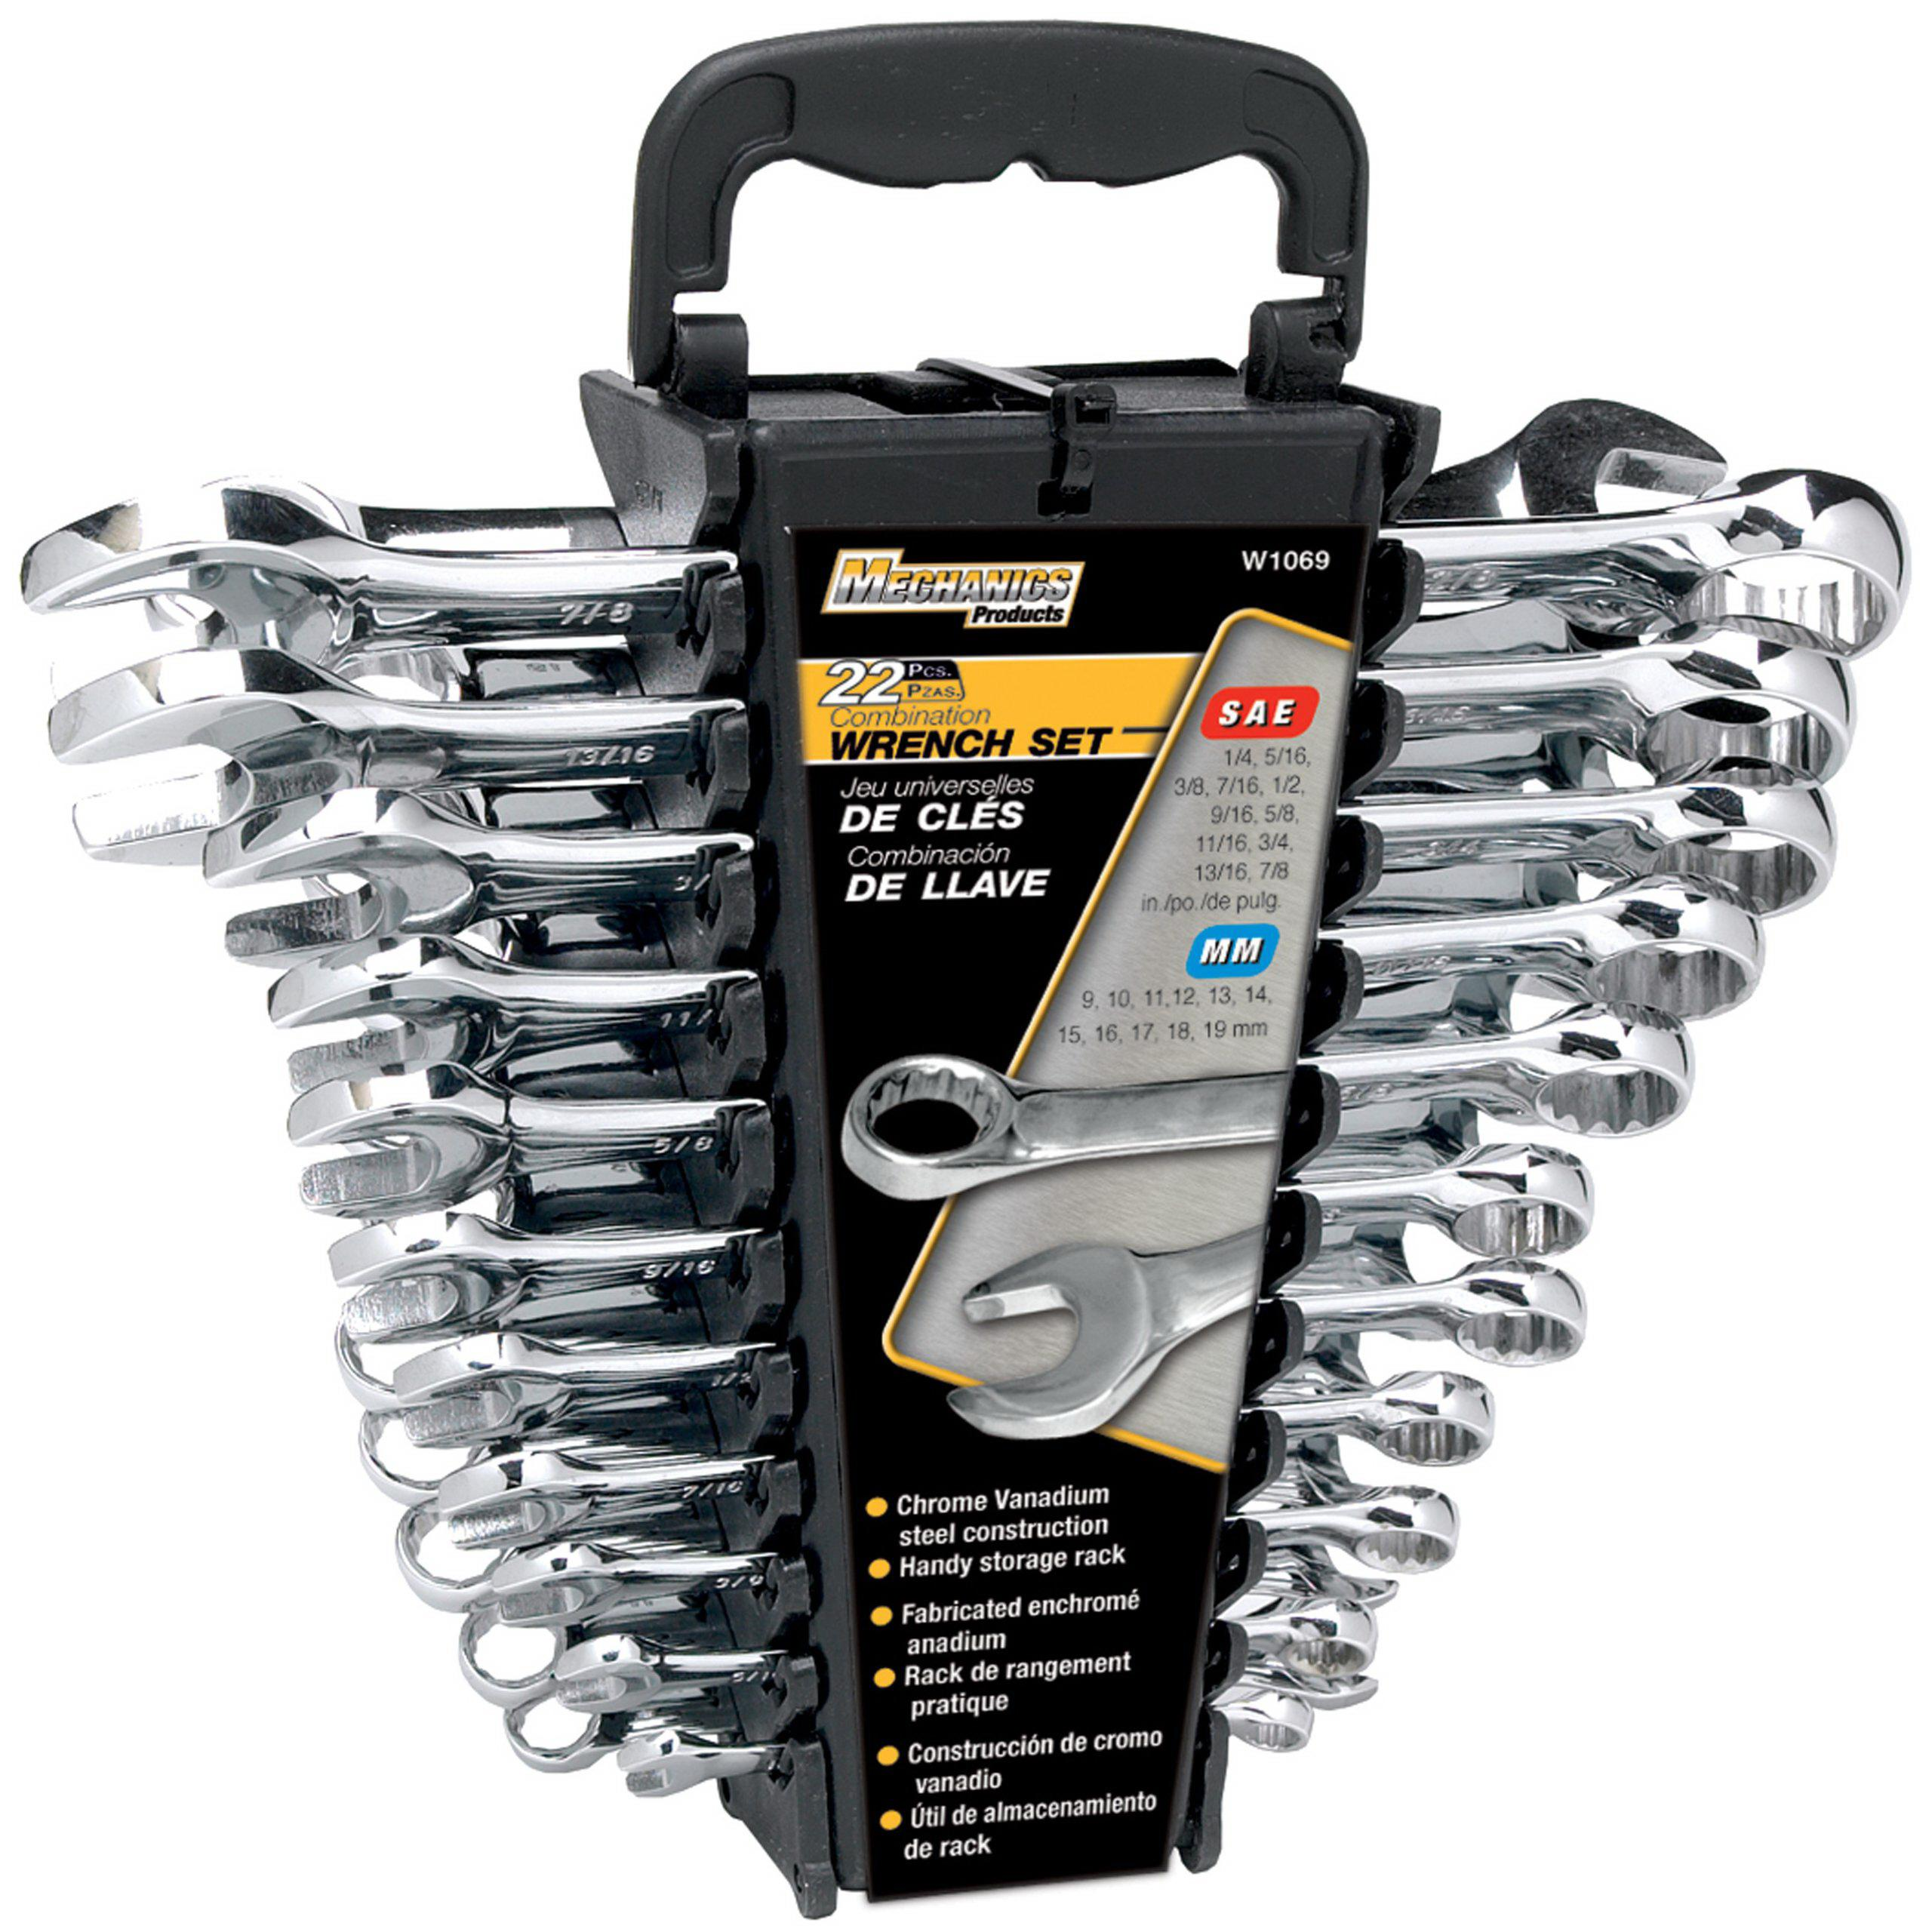 Performance Tool W1069 22pc CR-V Wrench Set w Racks by PERFORM TOOL